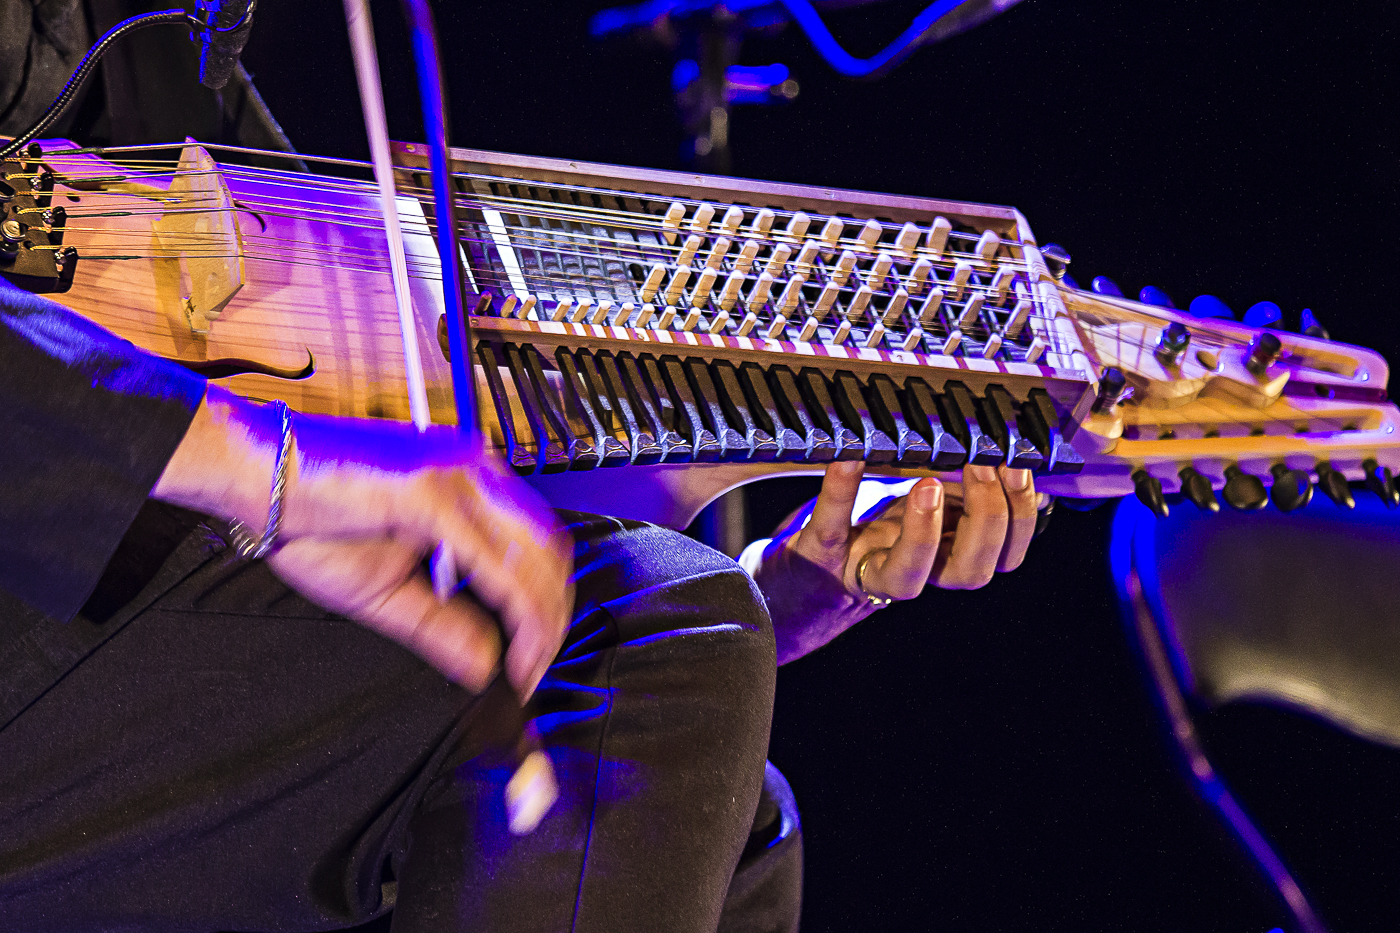 Le nyckelharpa, vièle scandinave, d'Aliocha, Brothers of string, Mathias Duplessy & les Violons du Monde, Conques, Aveyron, 2020 ©George Berte